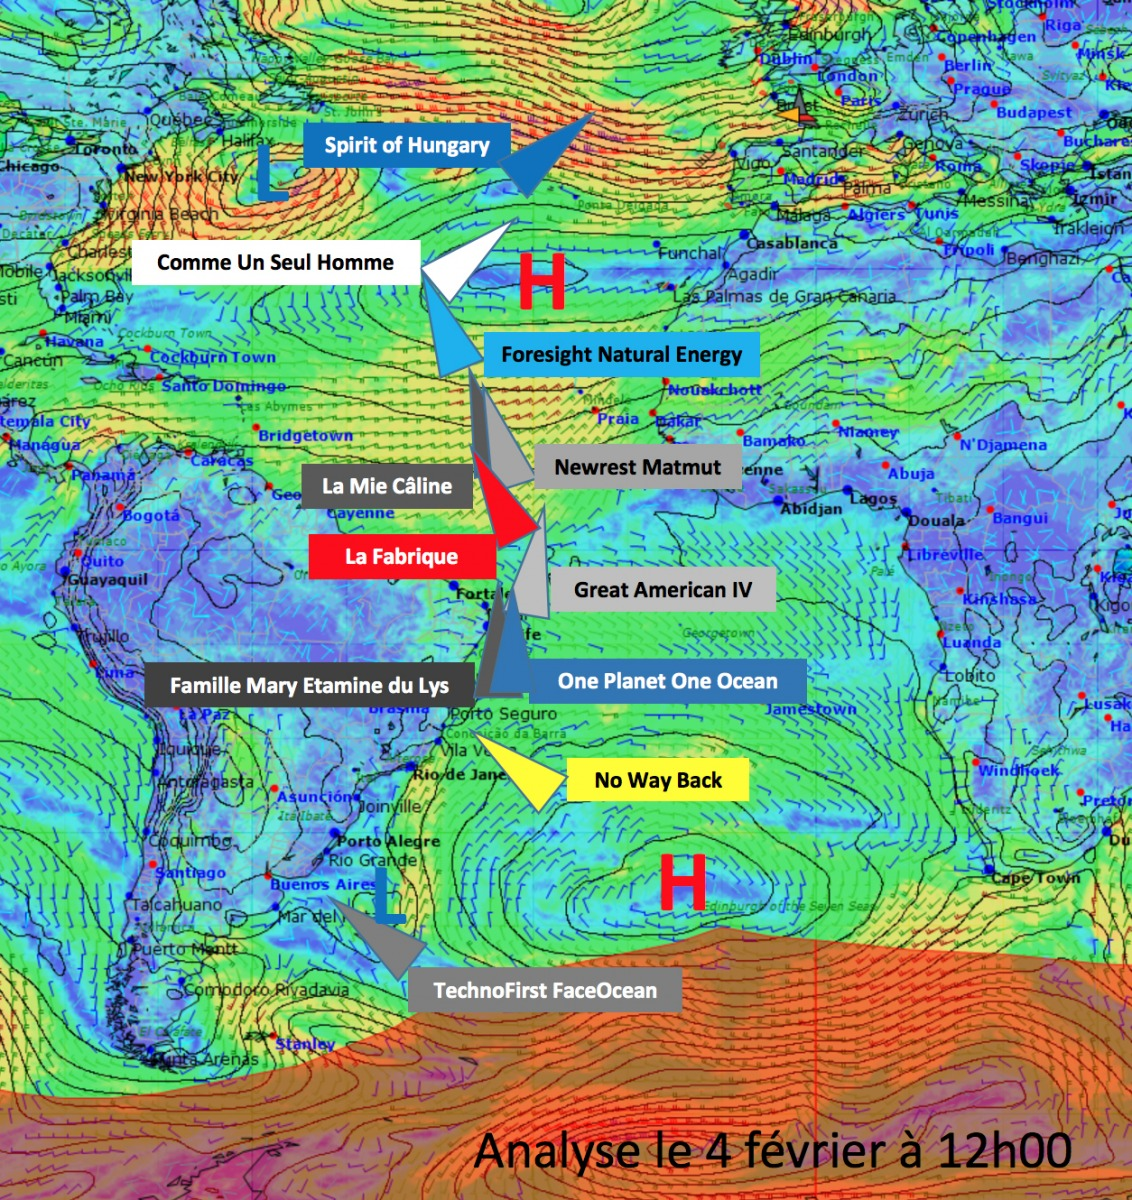 Weather Analysis February 4 th 2017 - Atlantic